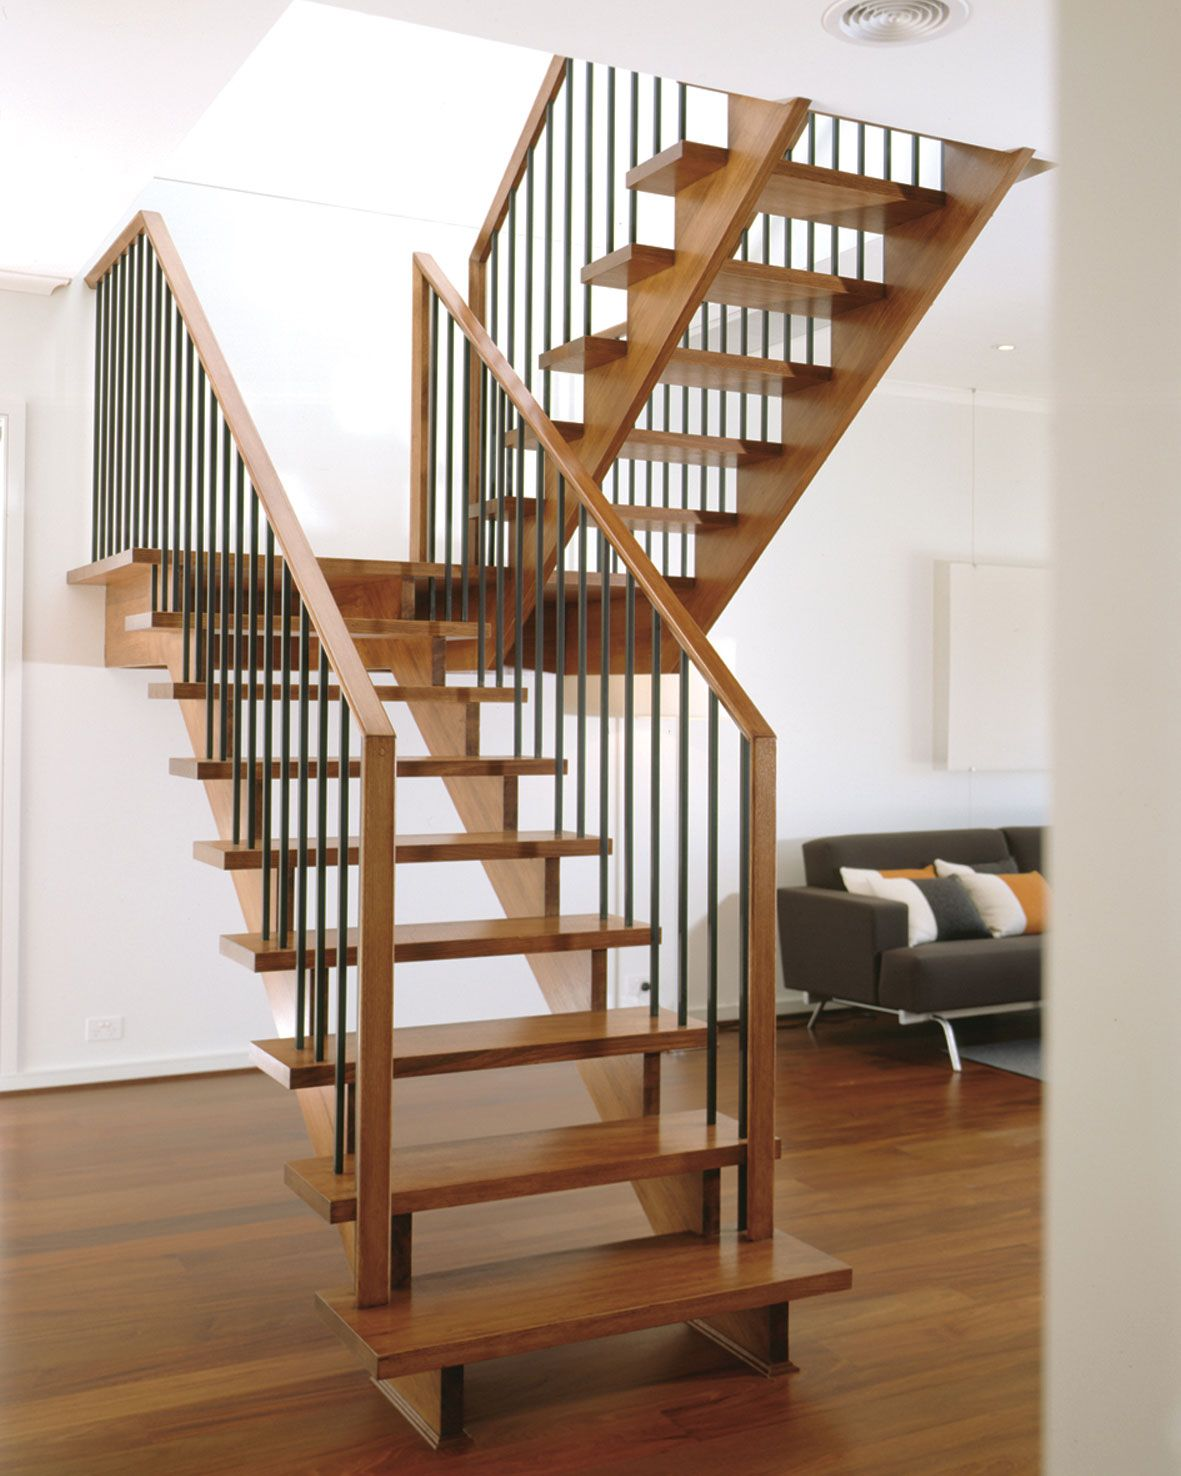 Staircases Design Stunning Staircase Designs In Home Interior With Wooden